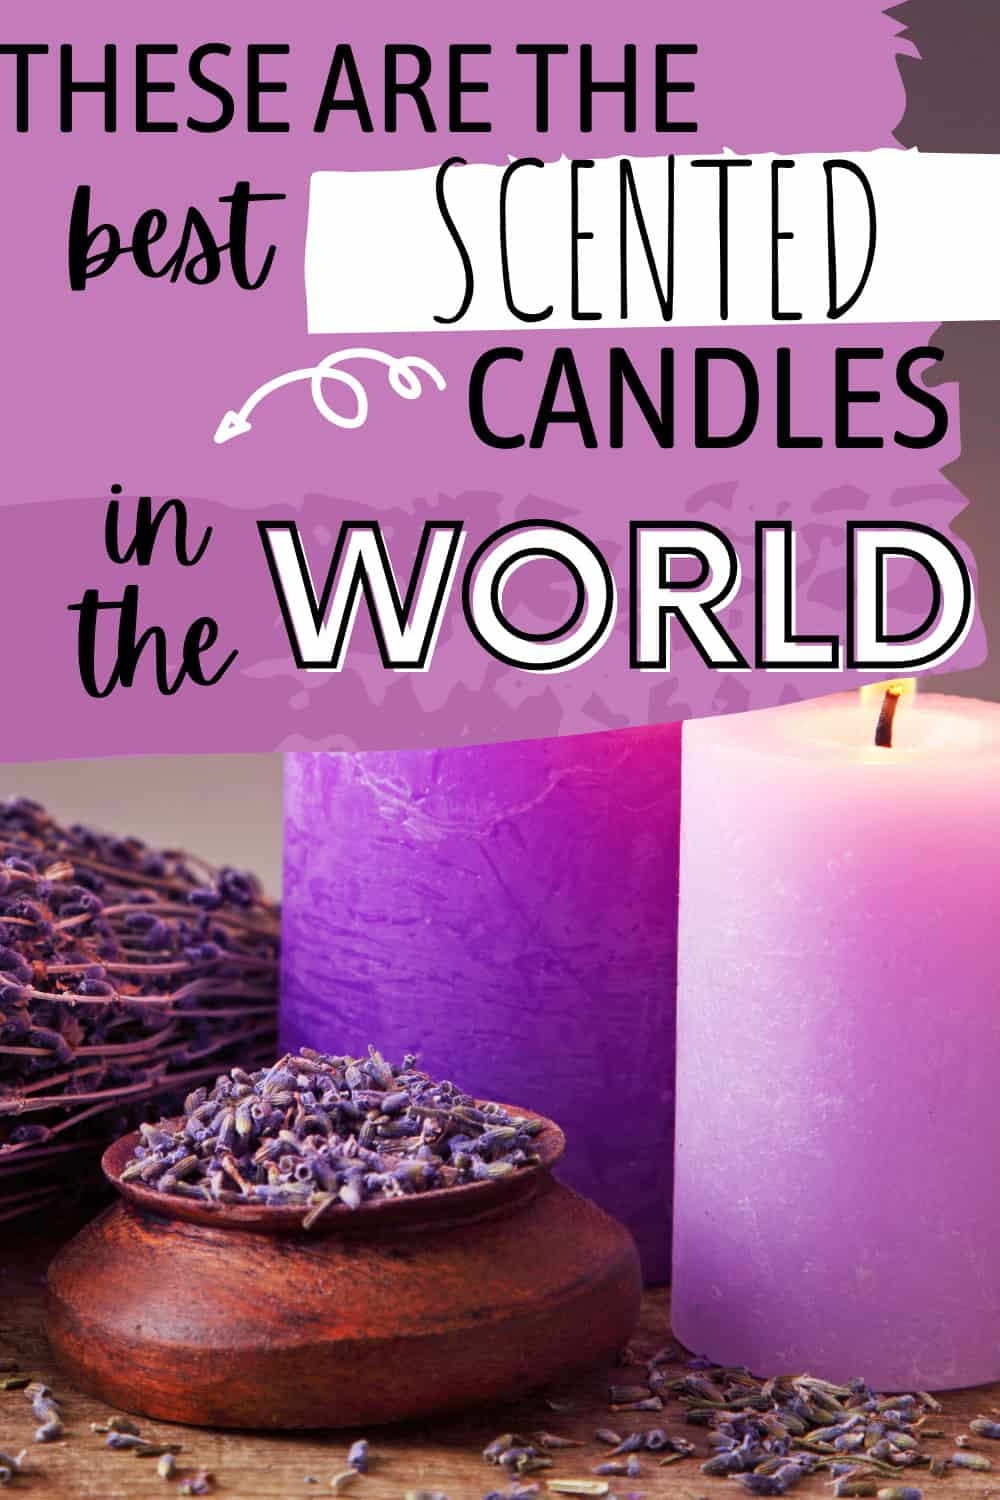 What is the best brand of scented candles?